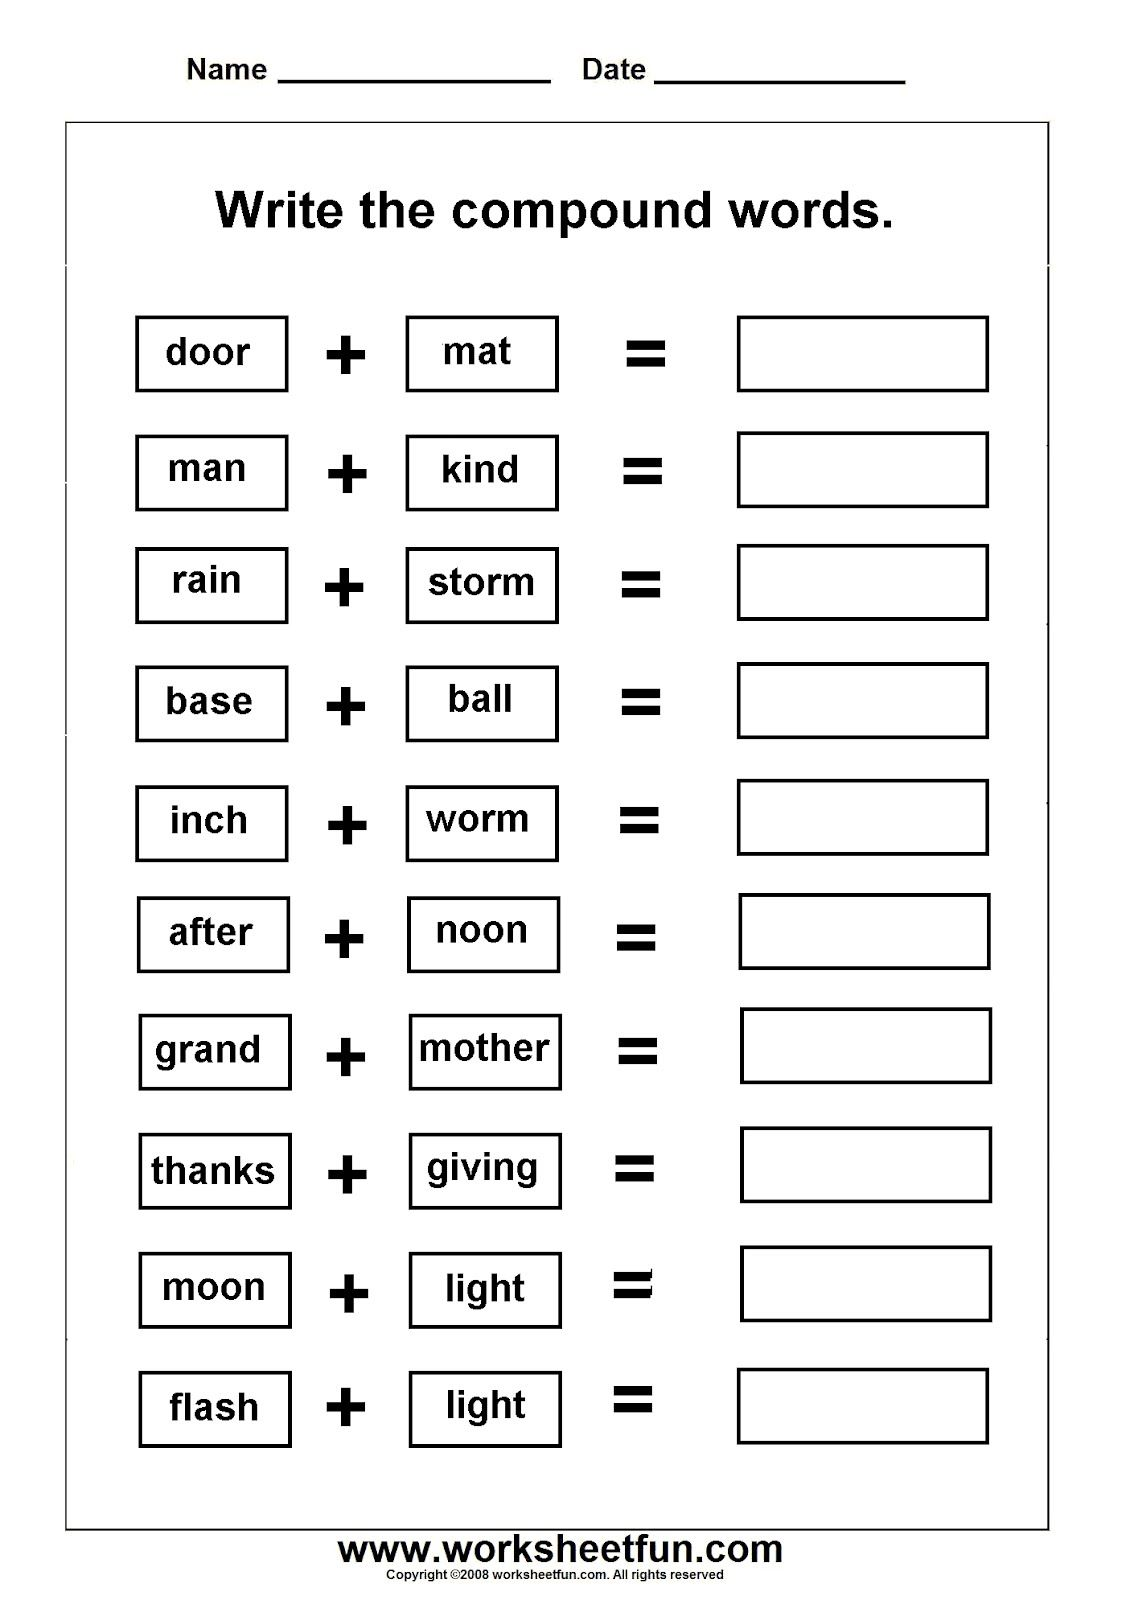 worksheets on compound words with pictures ela activities pinterest worksheets classroom. Black Bedroom Furniture Sets. Home Design Ideas